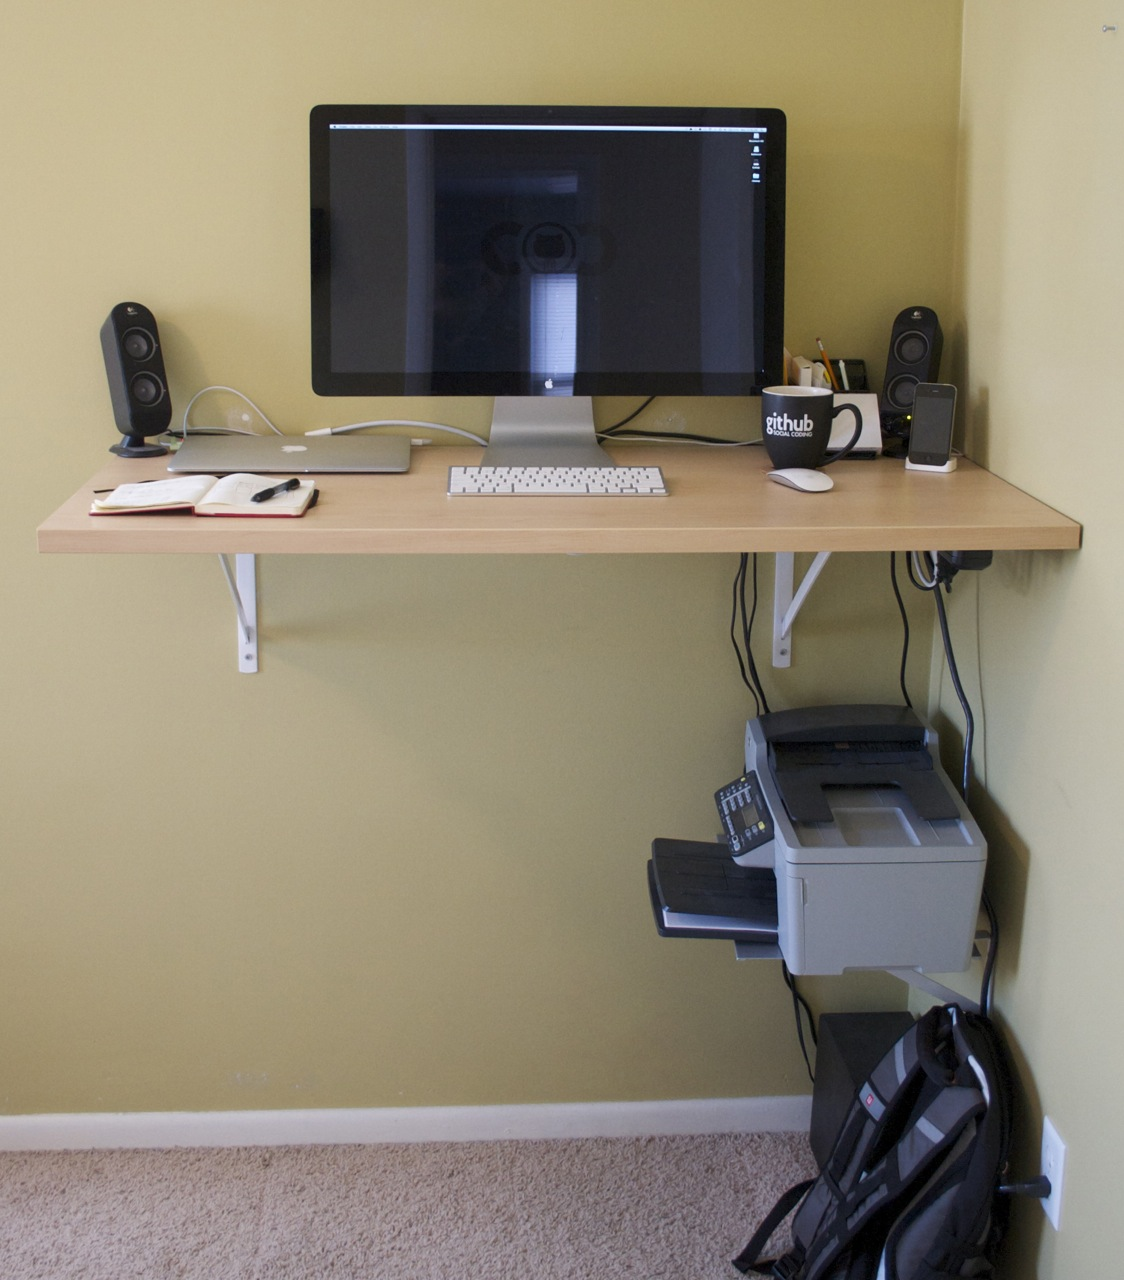 The finished standing desk